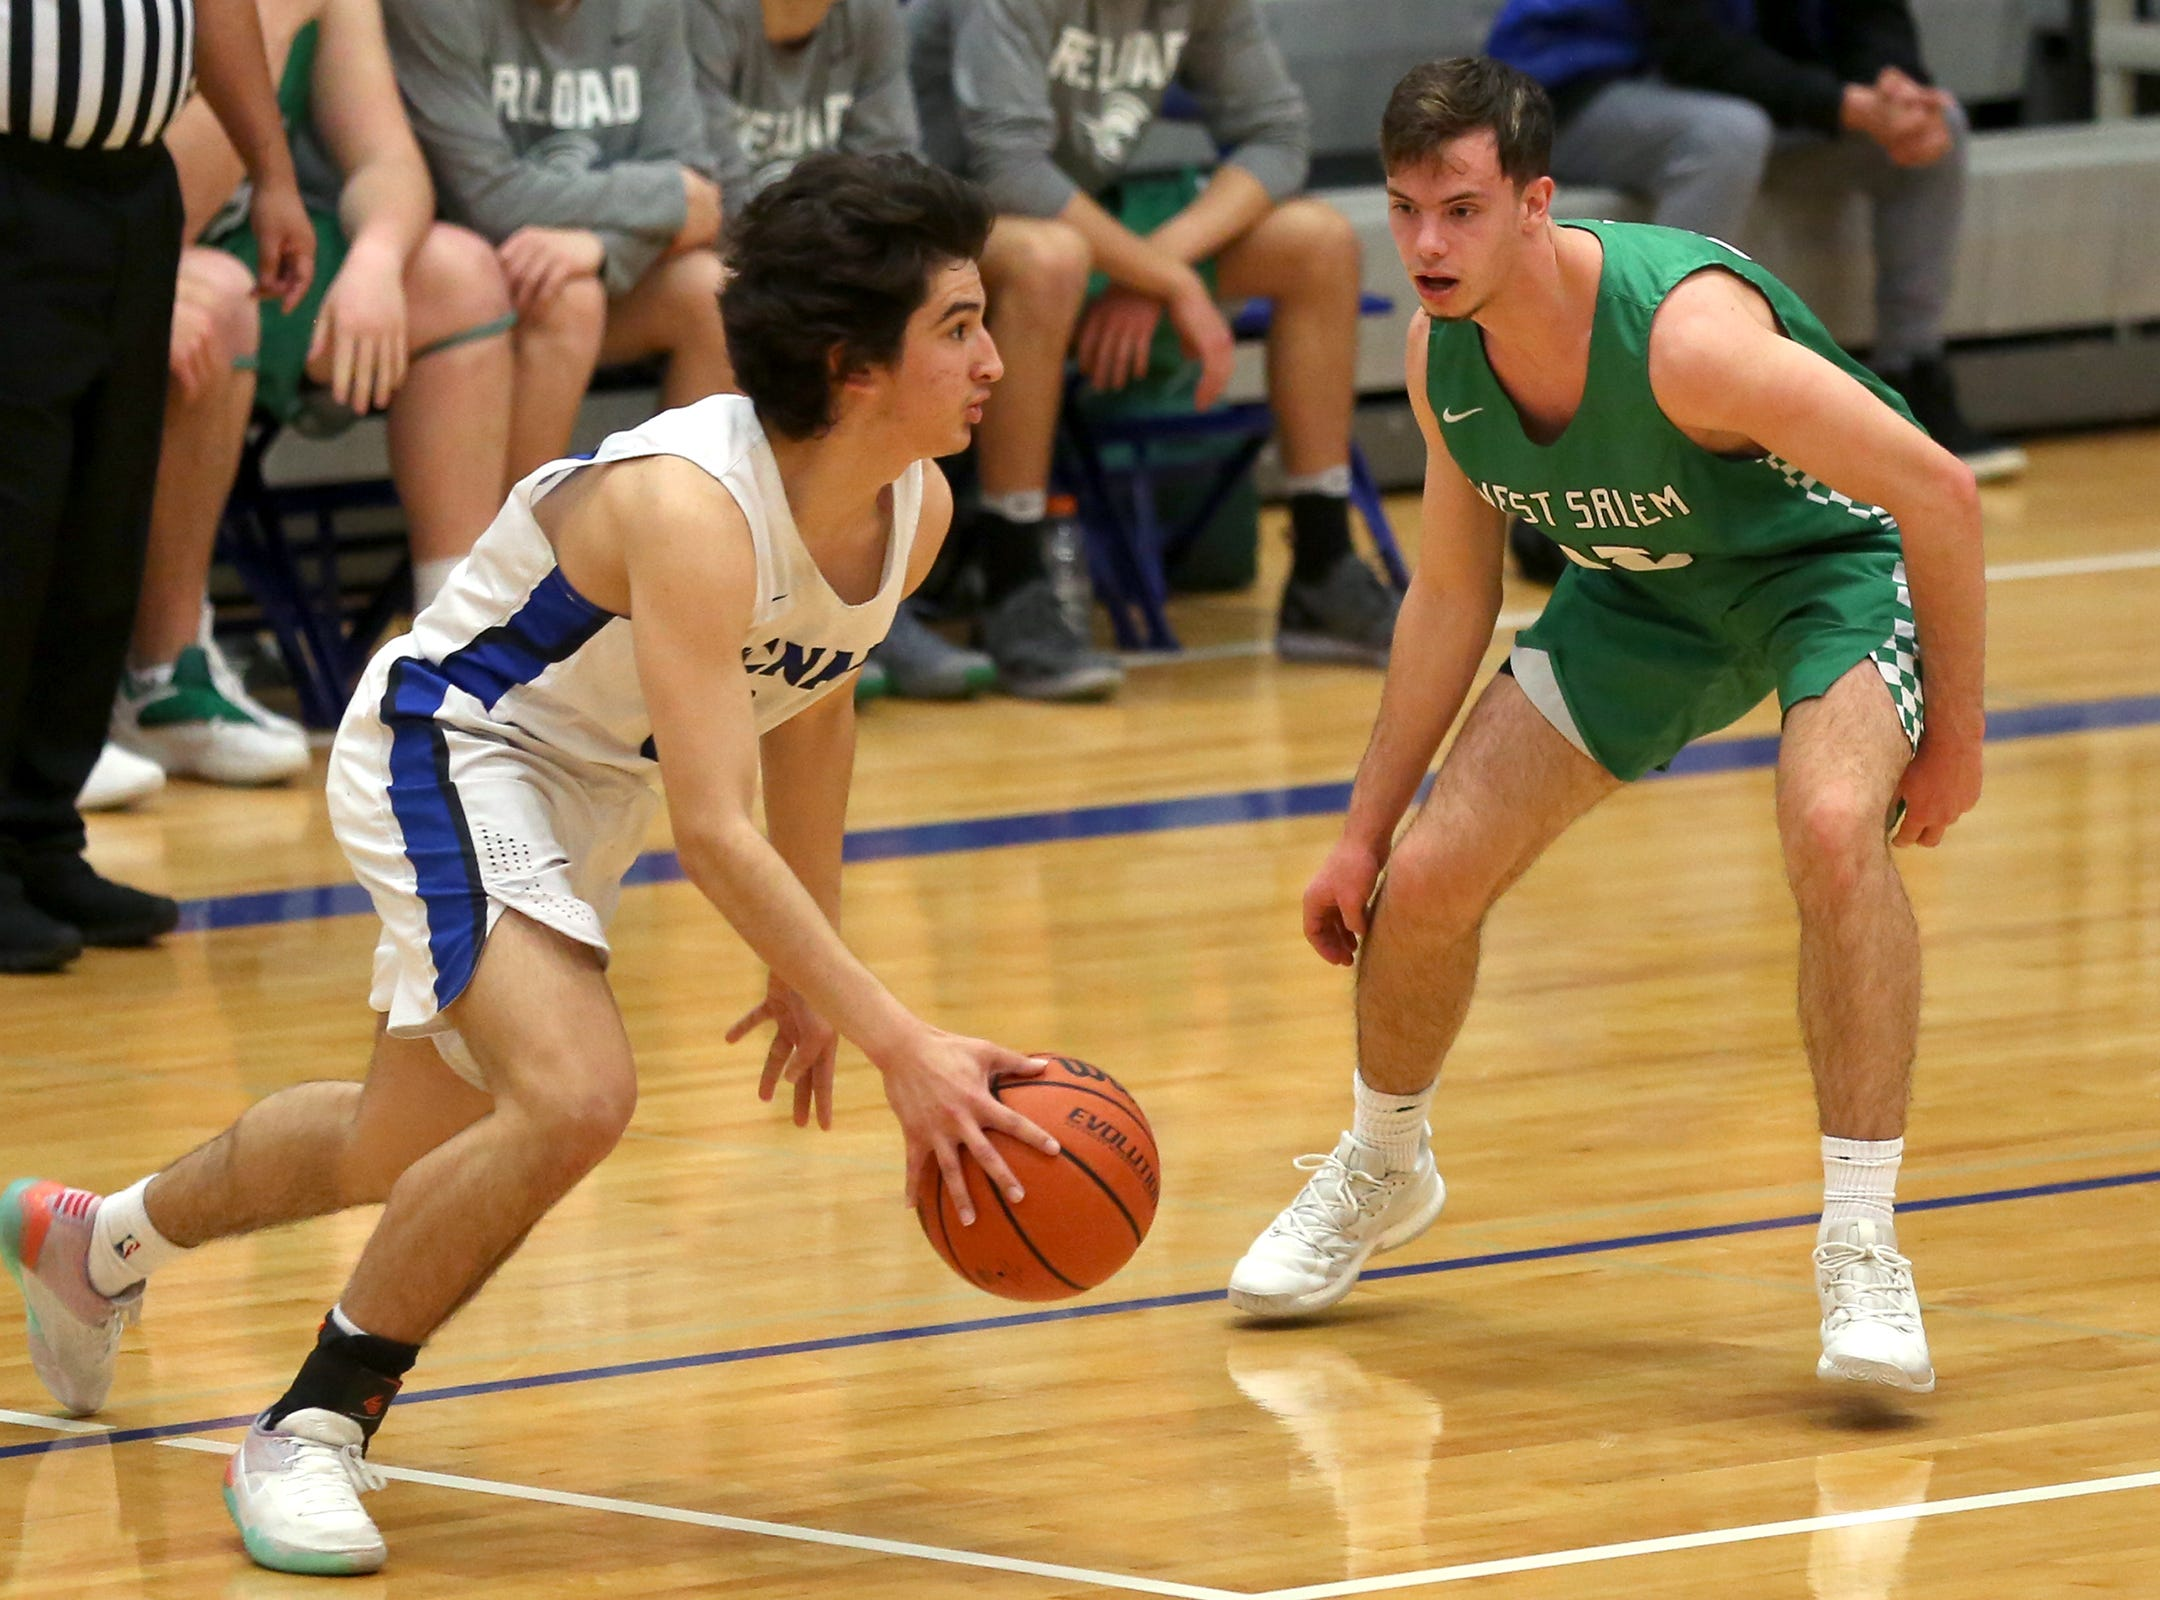 McNary's Alfredo Villareal (24) dribbles during the McNary boys basketball vs. West Salem game at McNary High School in Keizer on Wednesday, Feb. 6, 2019.